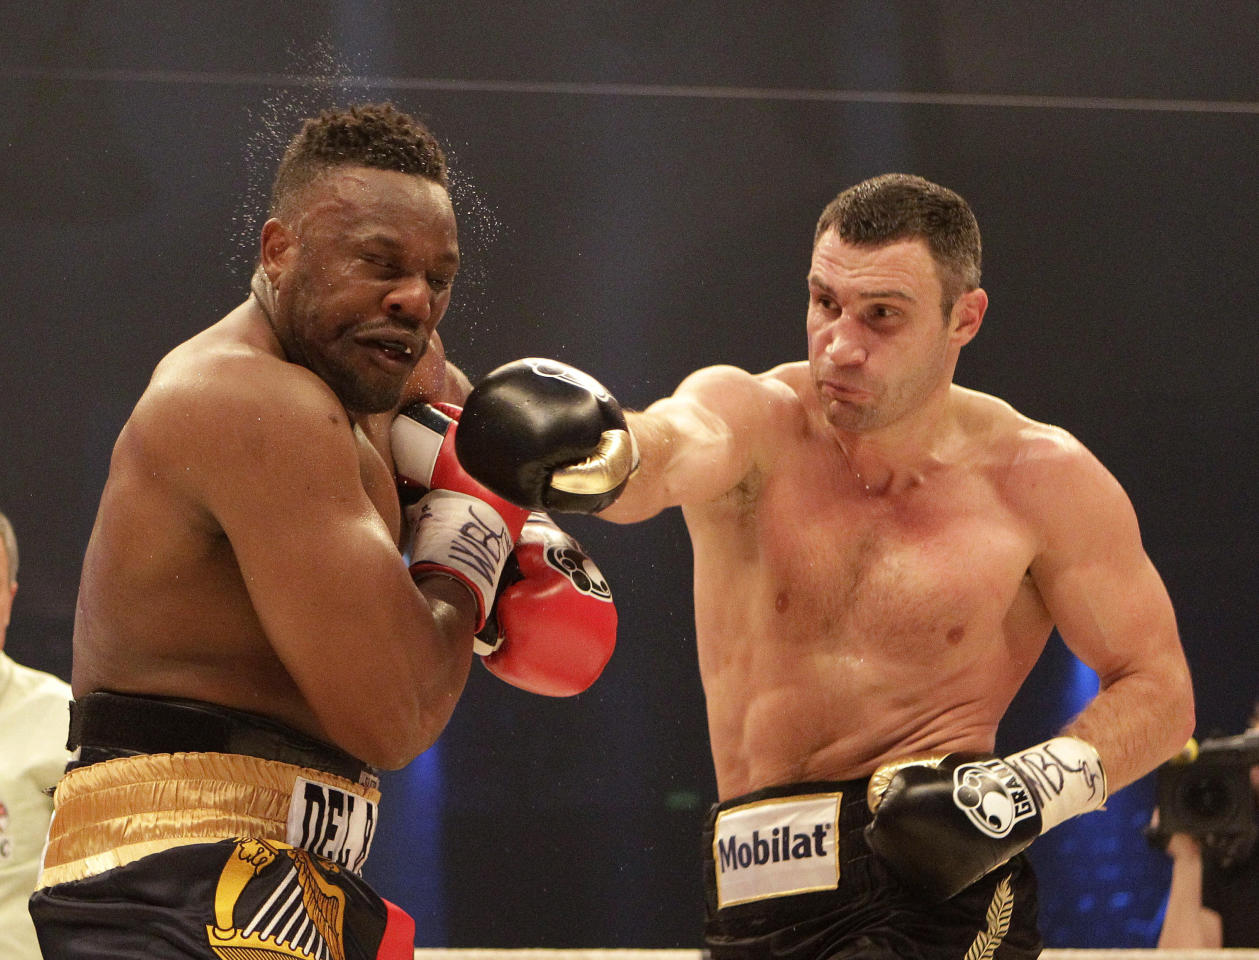 WBC heavyweight Champion Vitali Klitschko of Ukraine, right, punches challenger Dereck Chisora of Britain during their WBC heavyweight title boxing bout at the Olympic hall in Munich, Germany , Saturday, Feb. 18, 2012. (AP Photo/Frank Augstein)